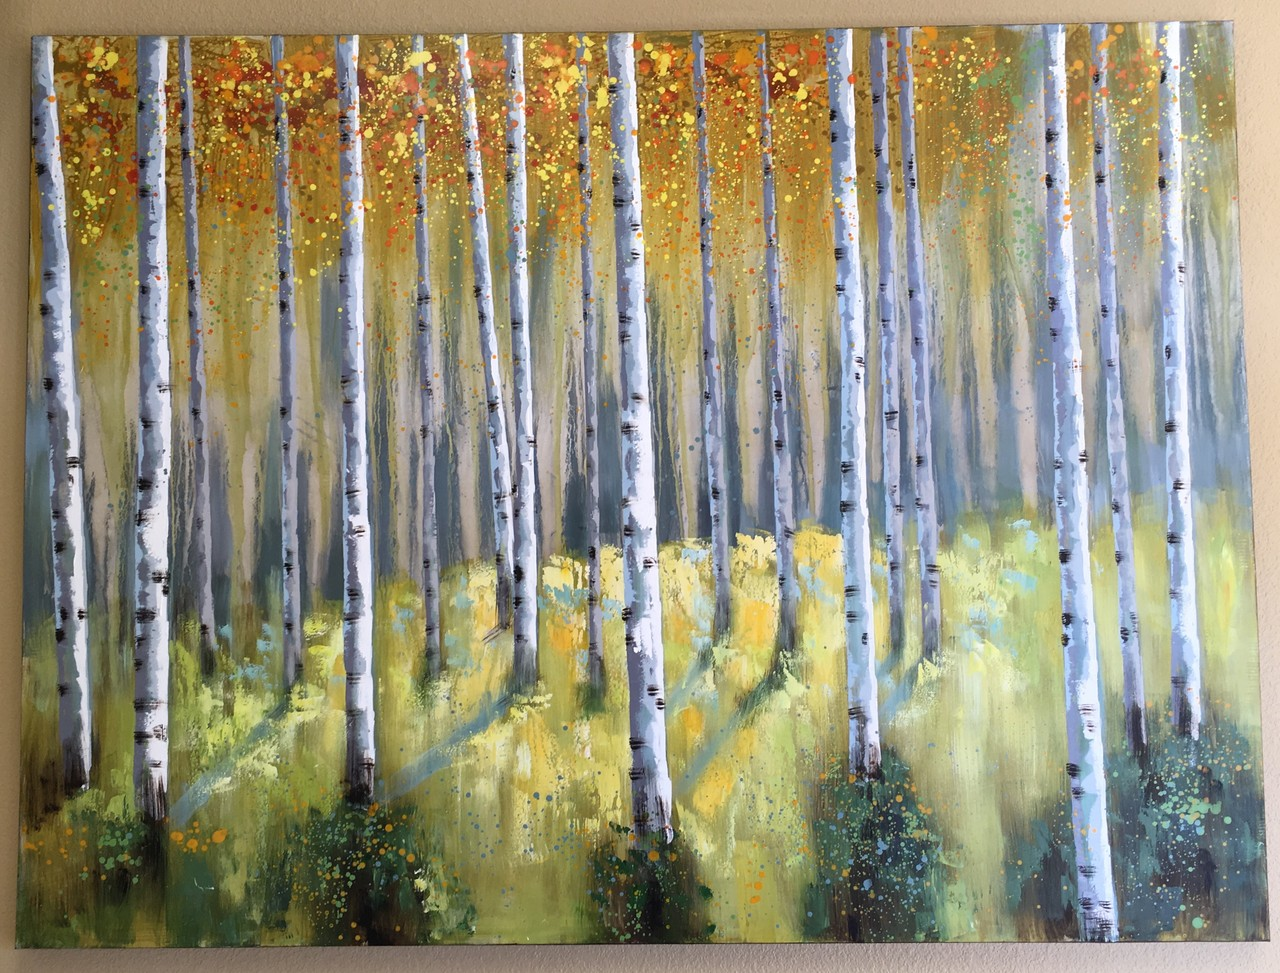 The Aspen painting hanging in our waiting room reflects our admiration for our beloved state. We are Colorado proud!